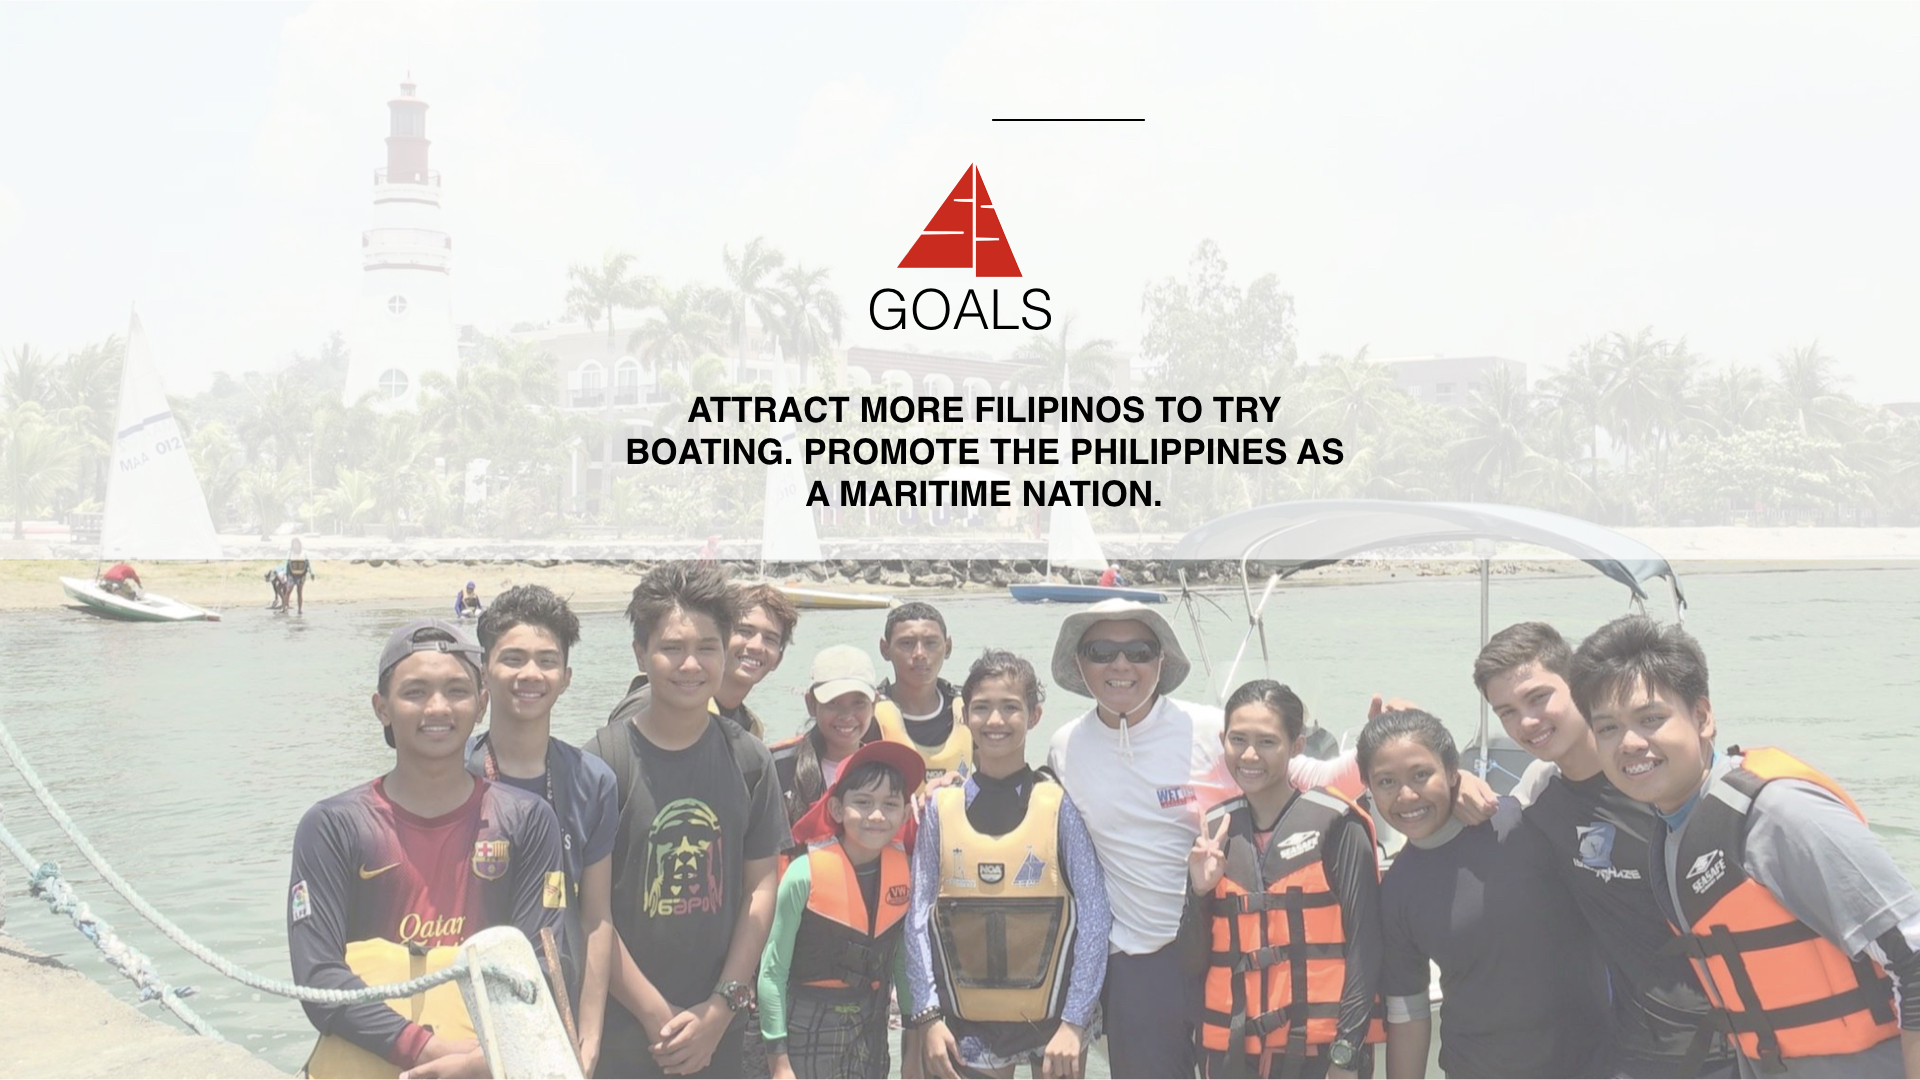 Attract more Filipinos to try boating and promote the Philippines as a Maritime Nation